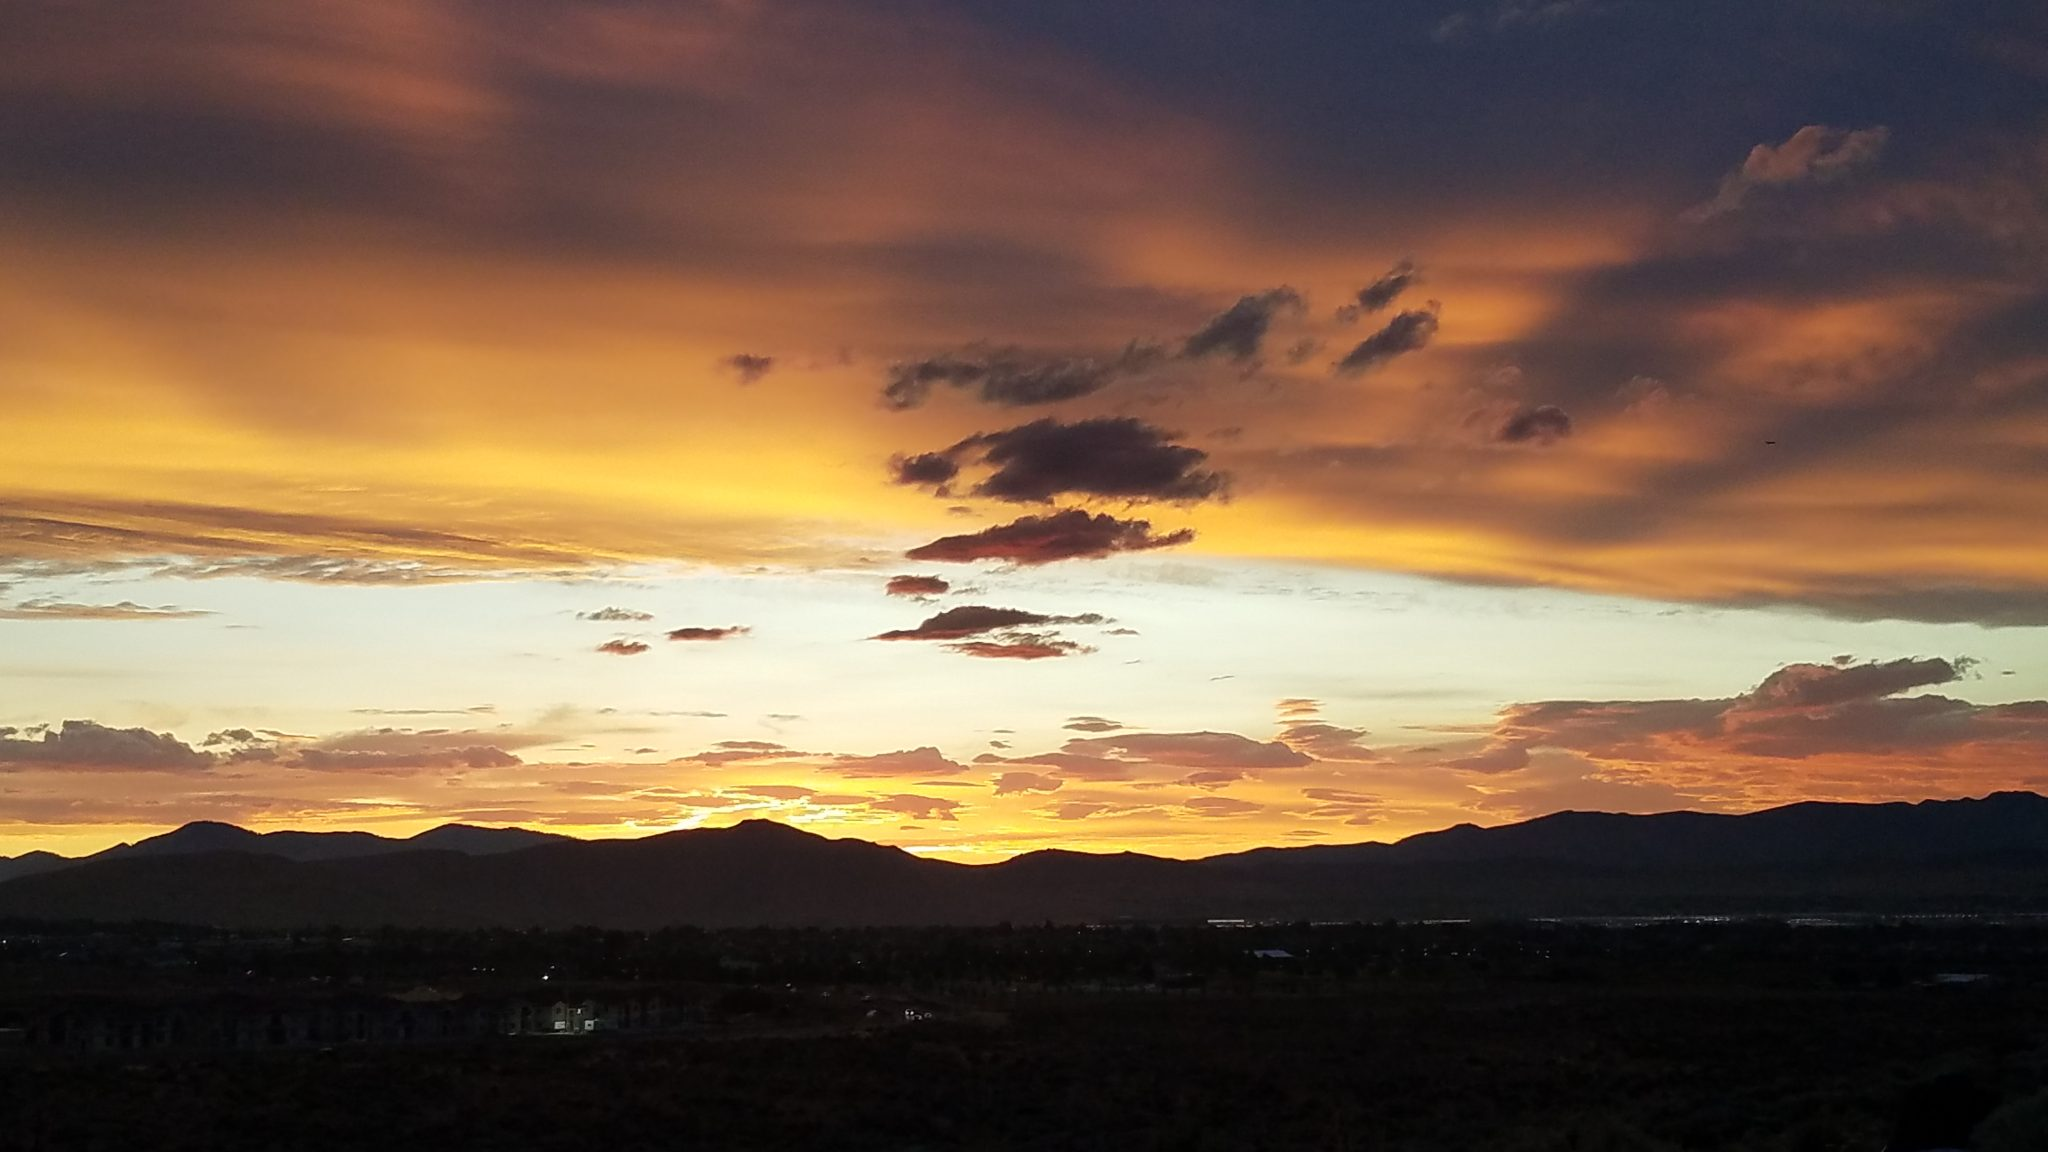 This sunset moved me so much….